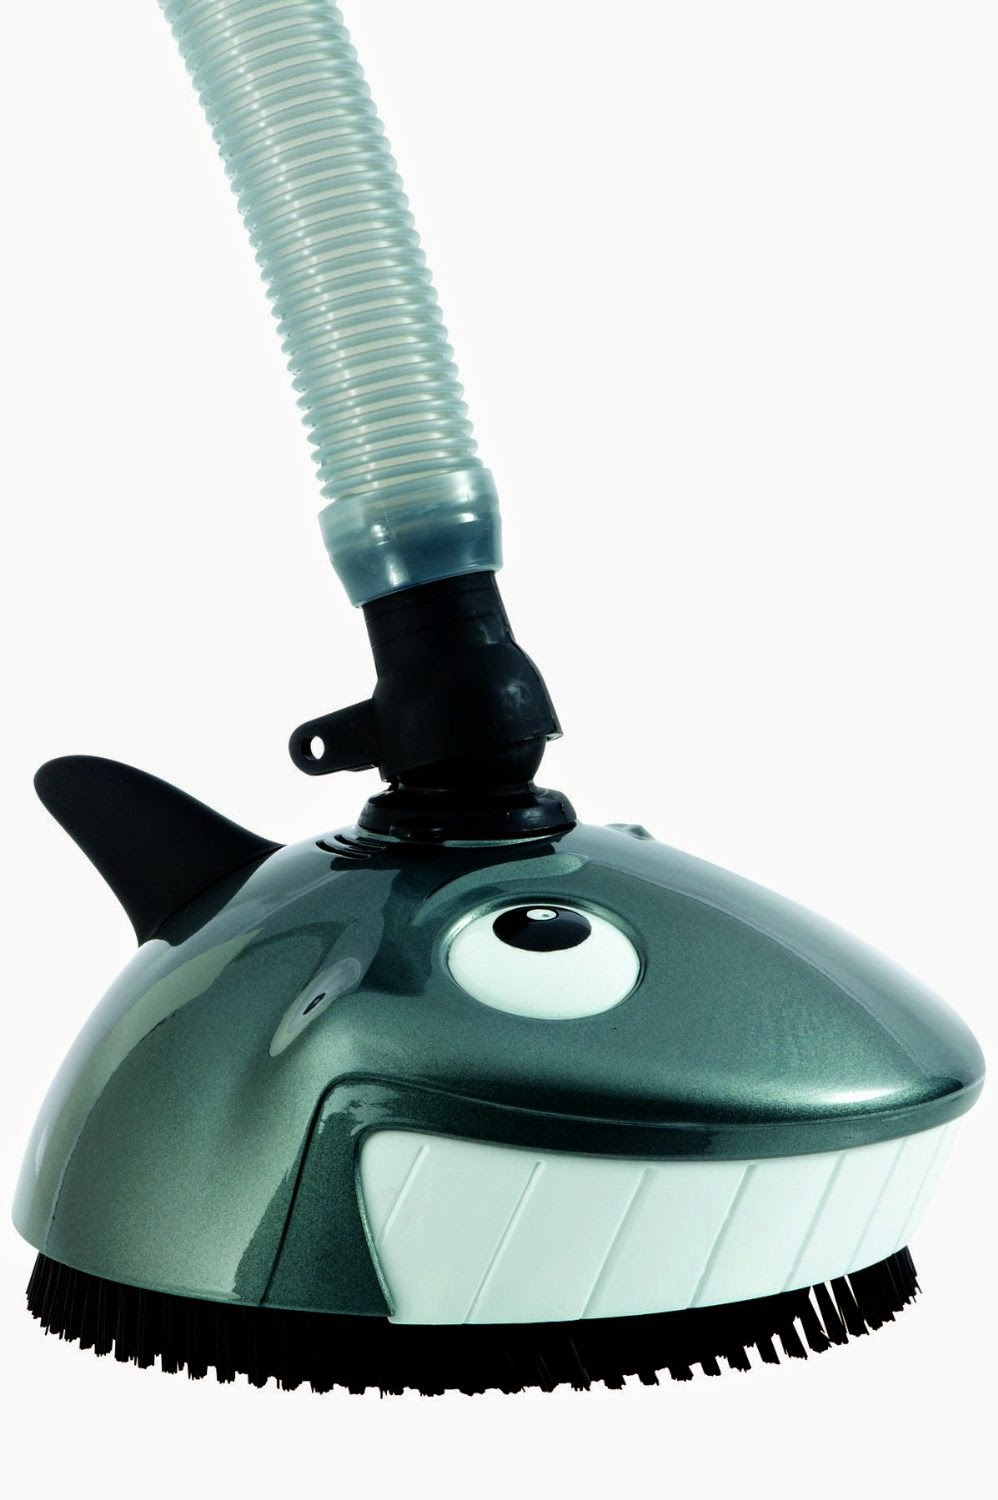 Krauly Lil Shark automatic above ground pool vacuum